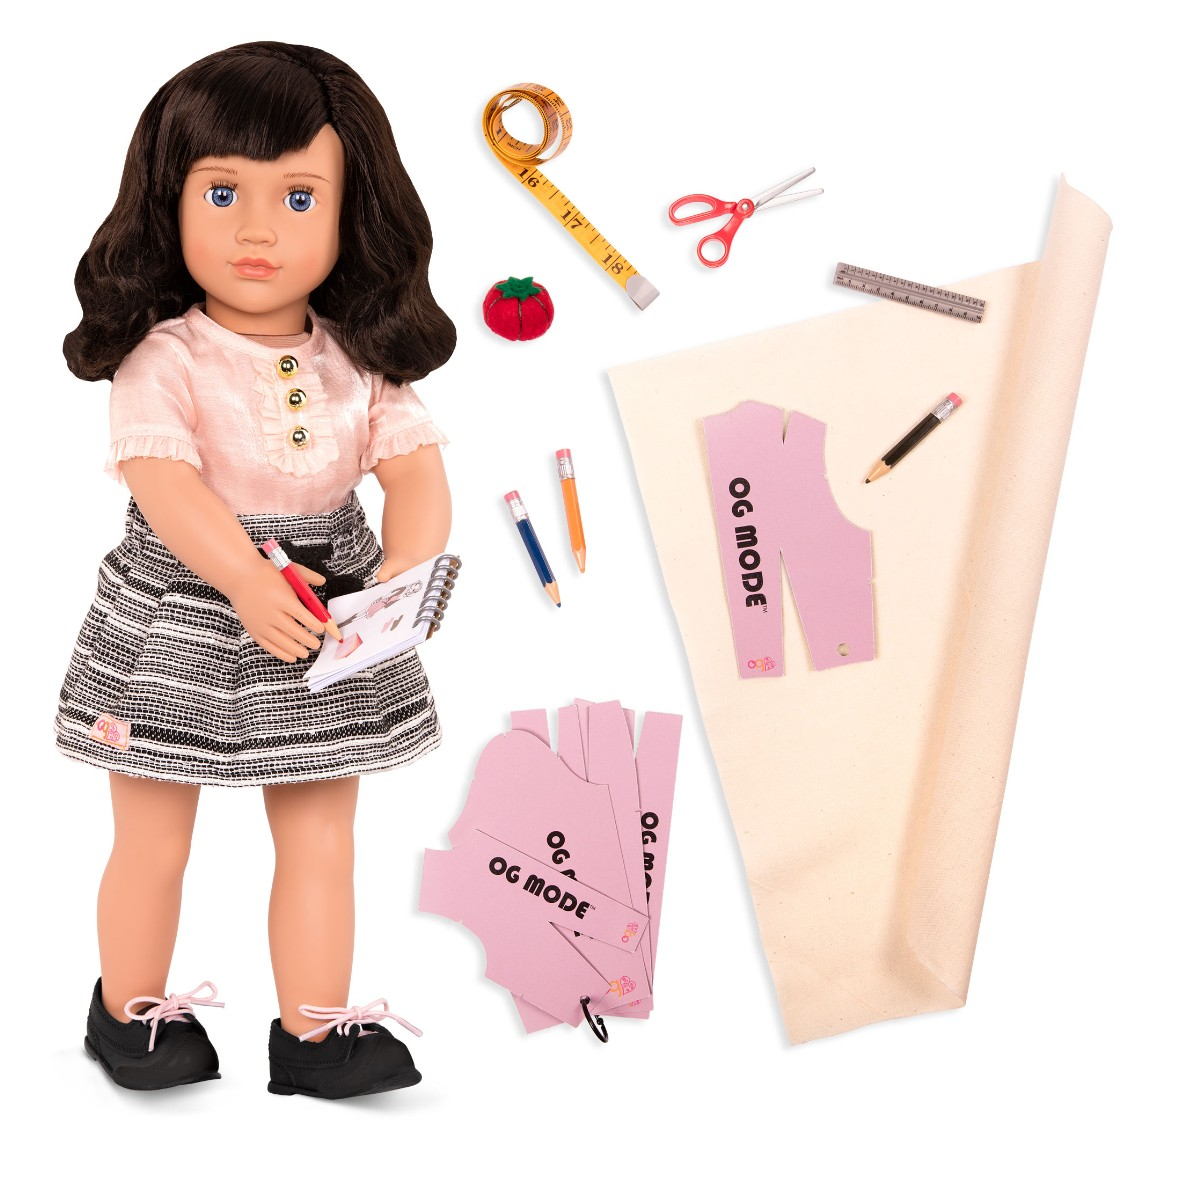 Our Generation - Olinda with sewing accessories (731264)